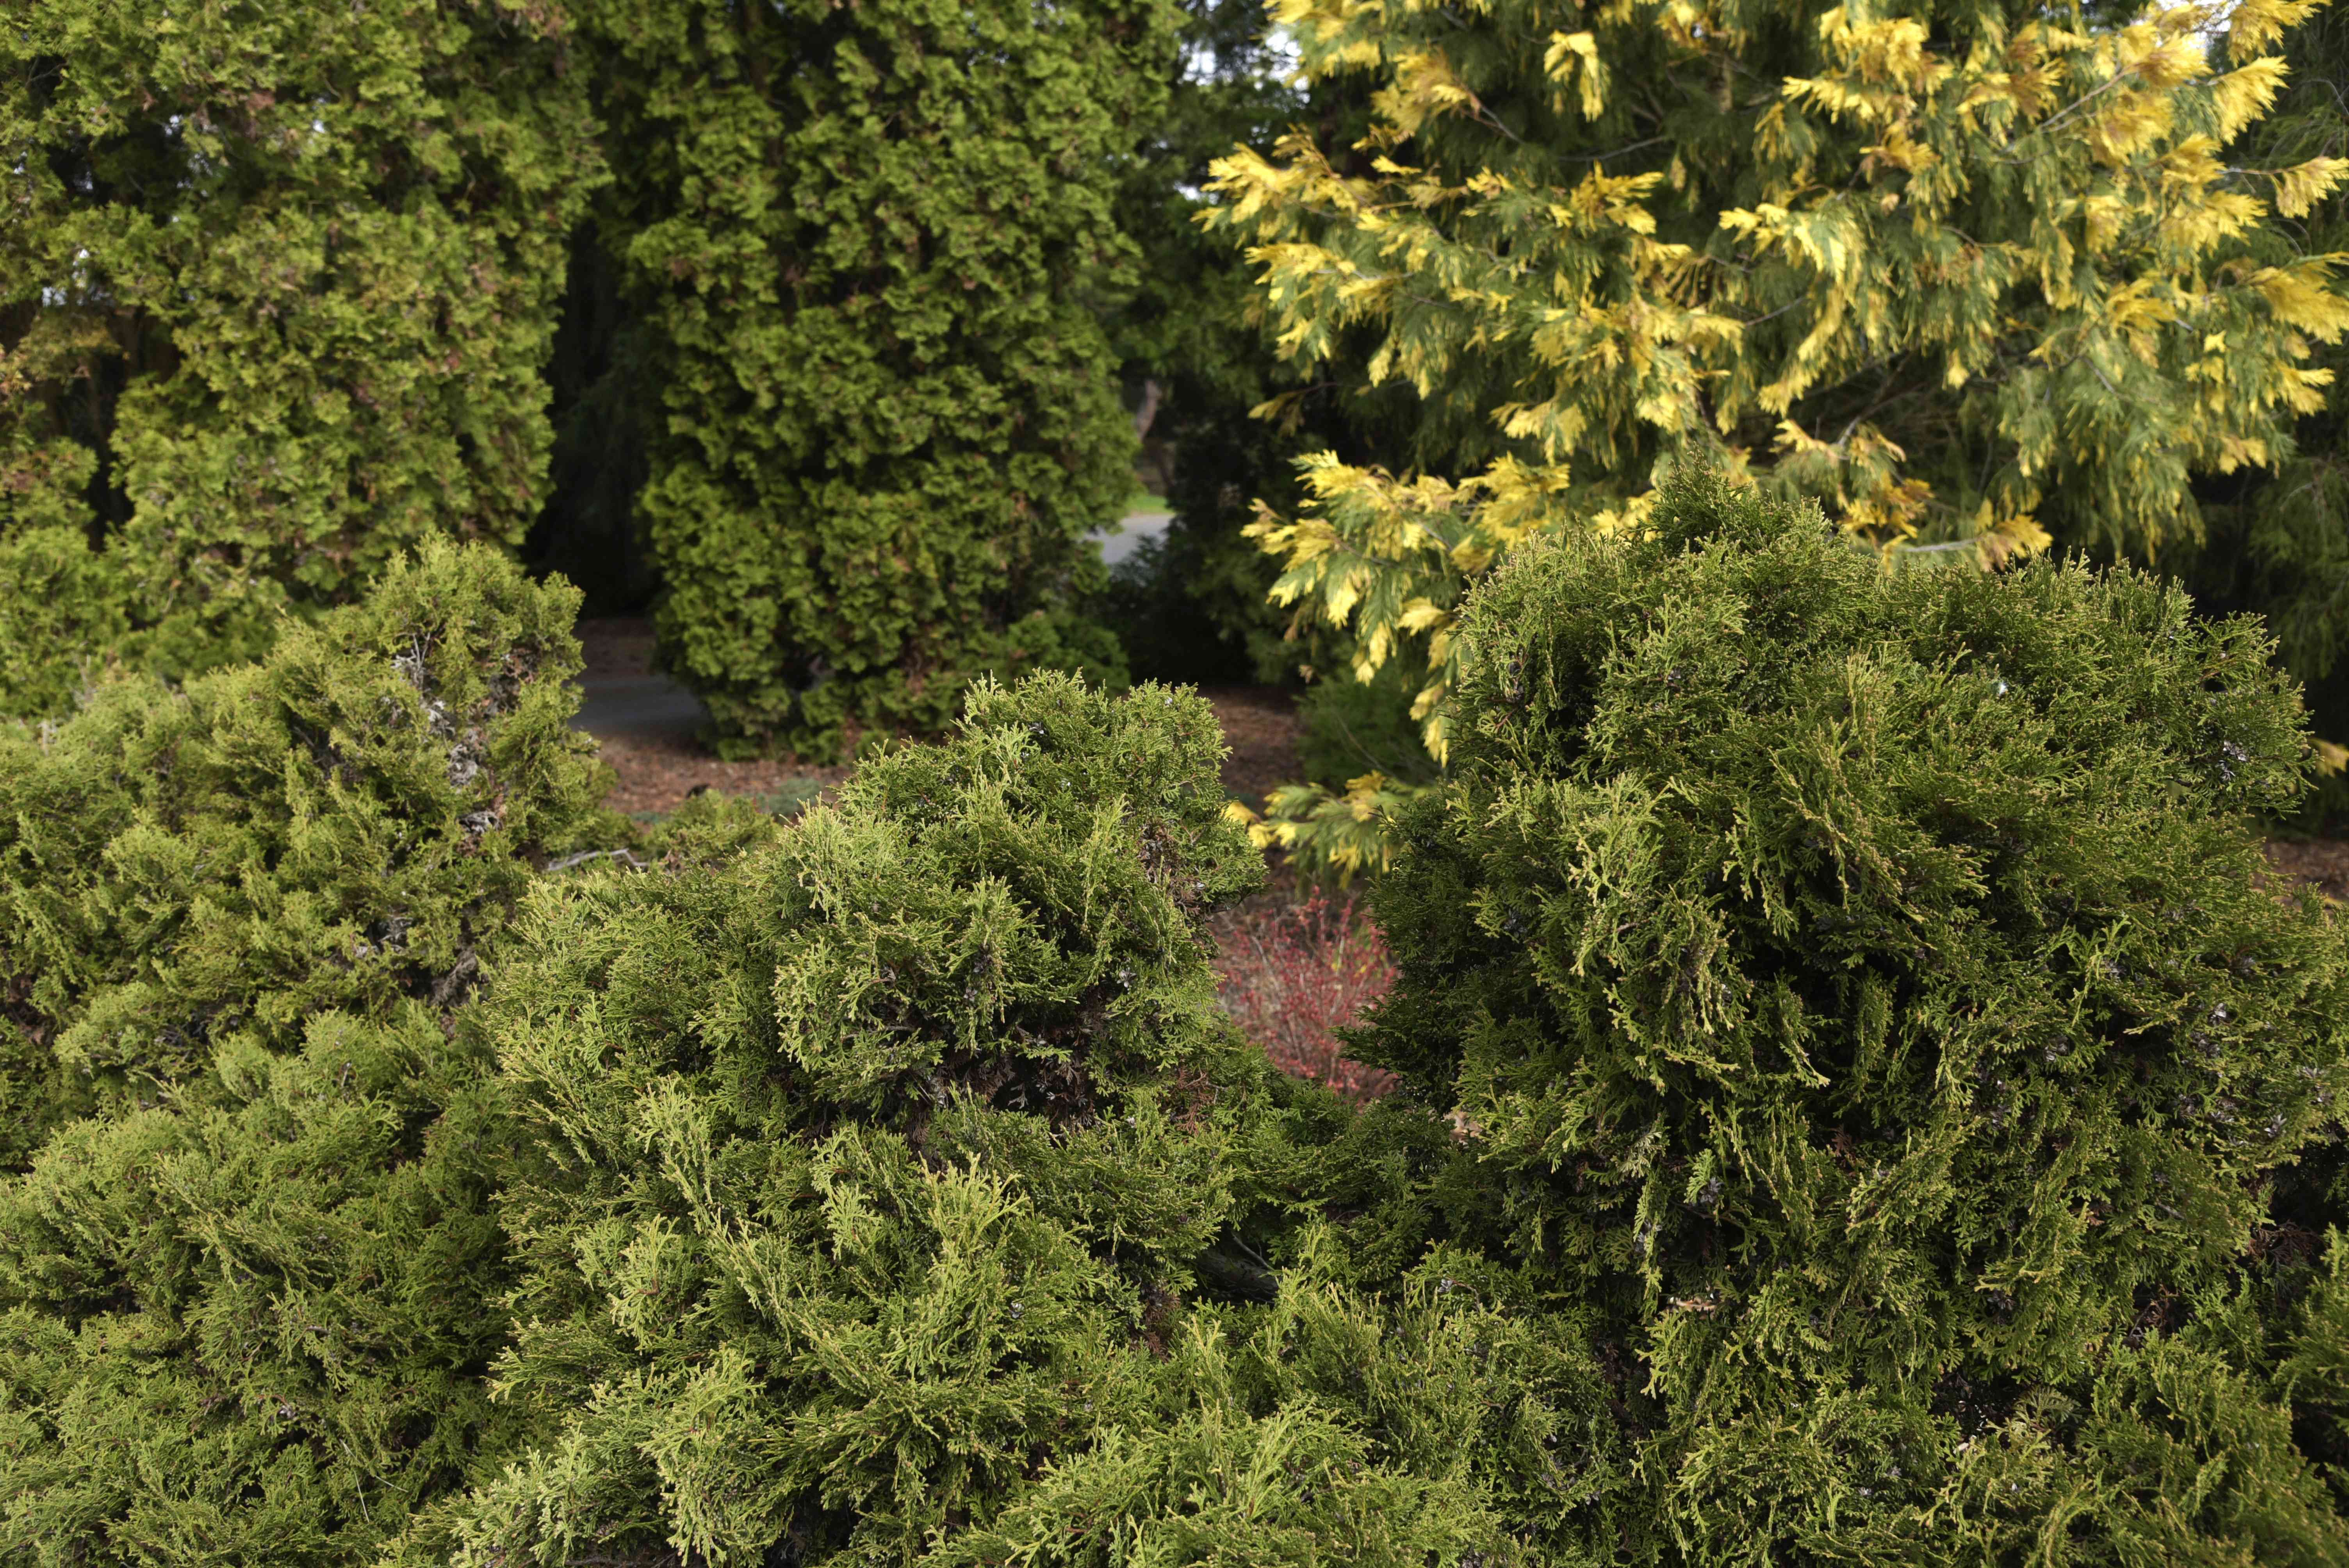 Thuja occidentalis dwarf conifer tree with flat and feathery foliage in front of yellow tree